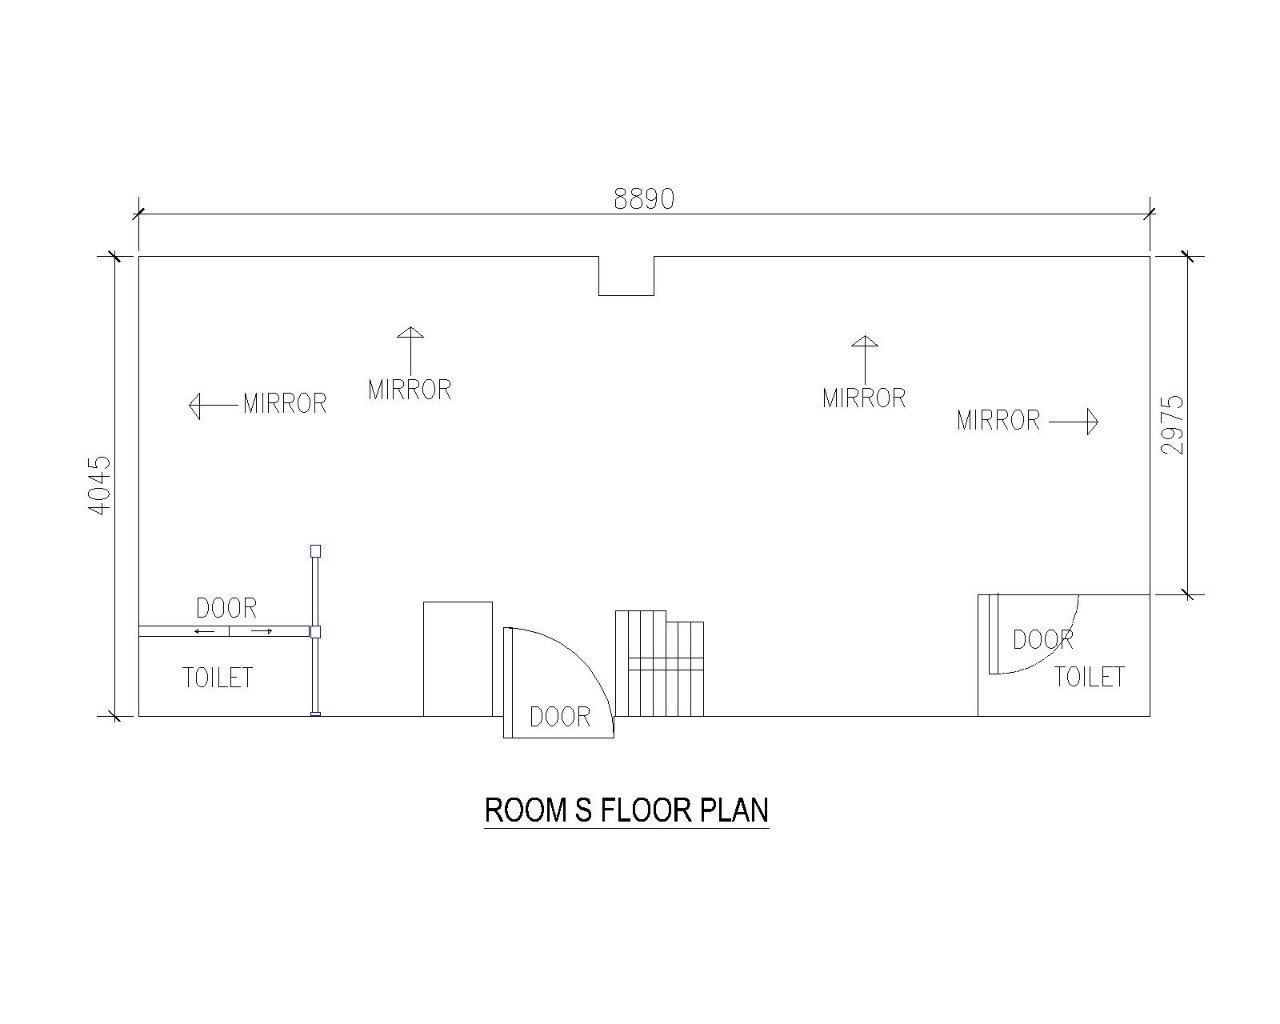 8890 -MIRROR MIRROR MIRROR MIRROR CN LLO DOOR DO TOILET TOILET DOOR ROOM S FLOOR PLAN  text